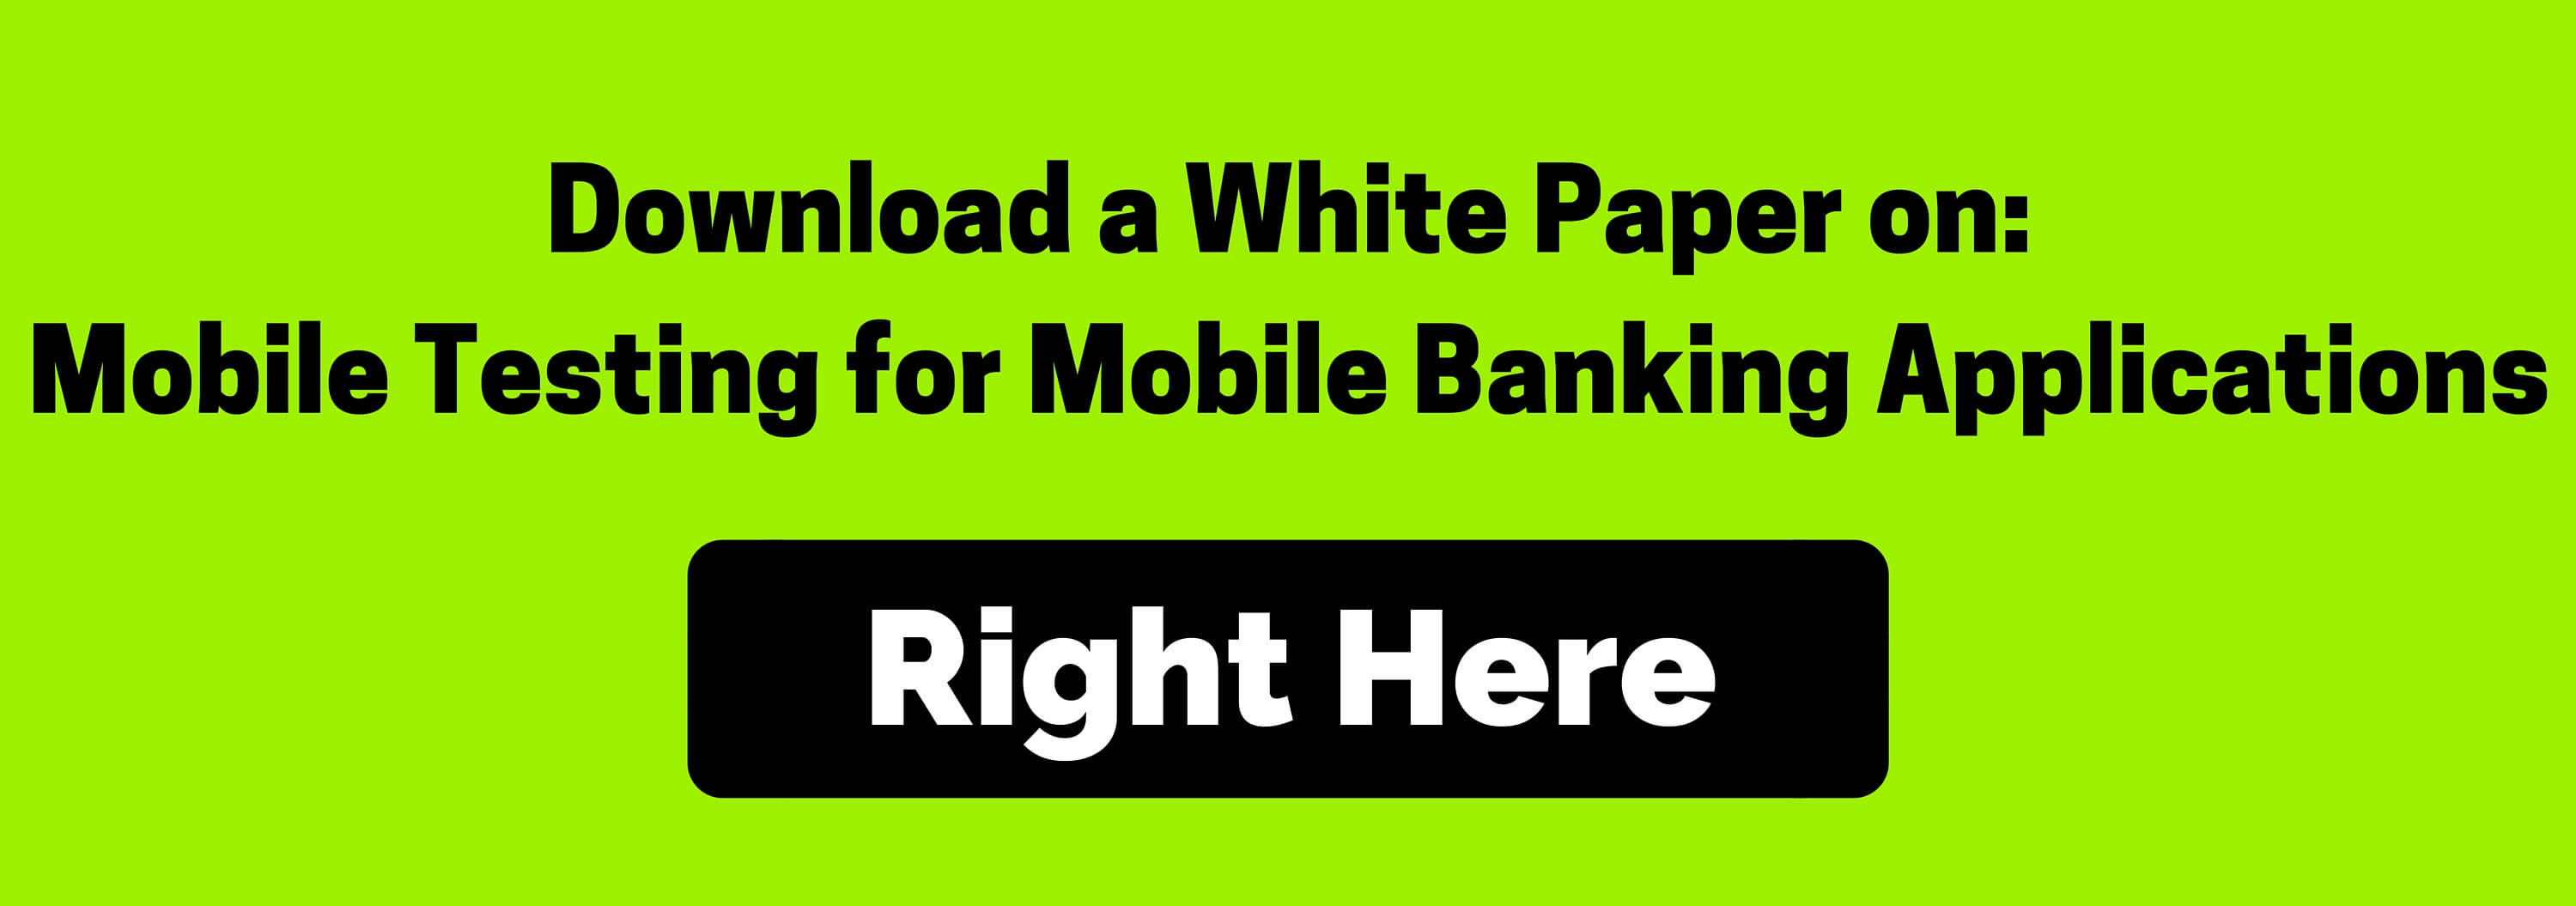 Mobile Testing for Mobile Banking Applications